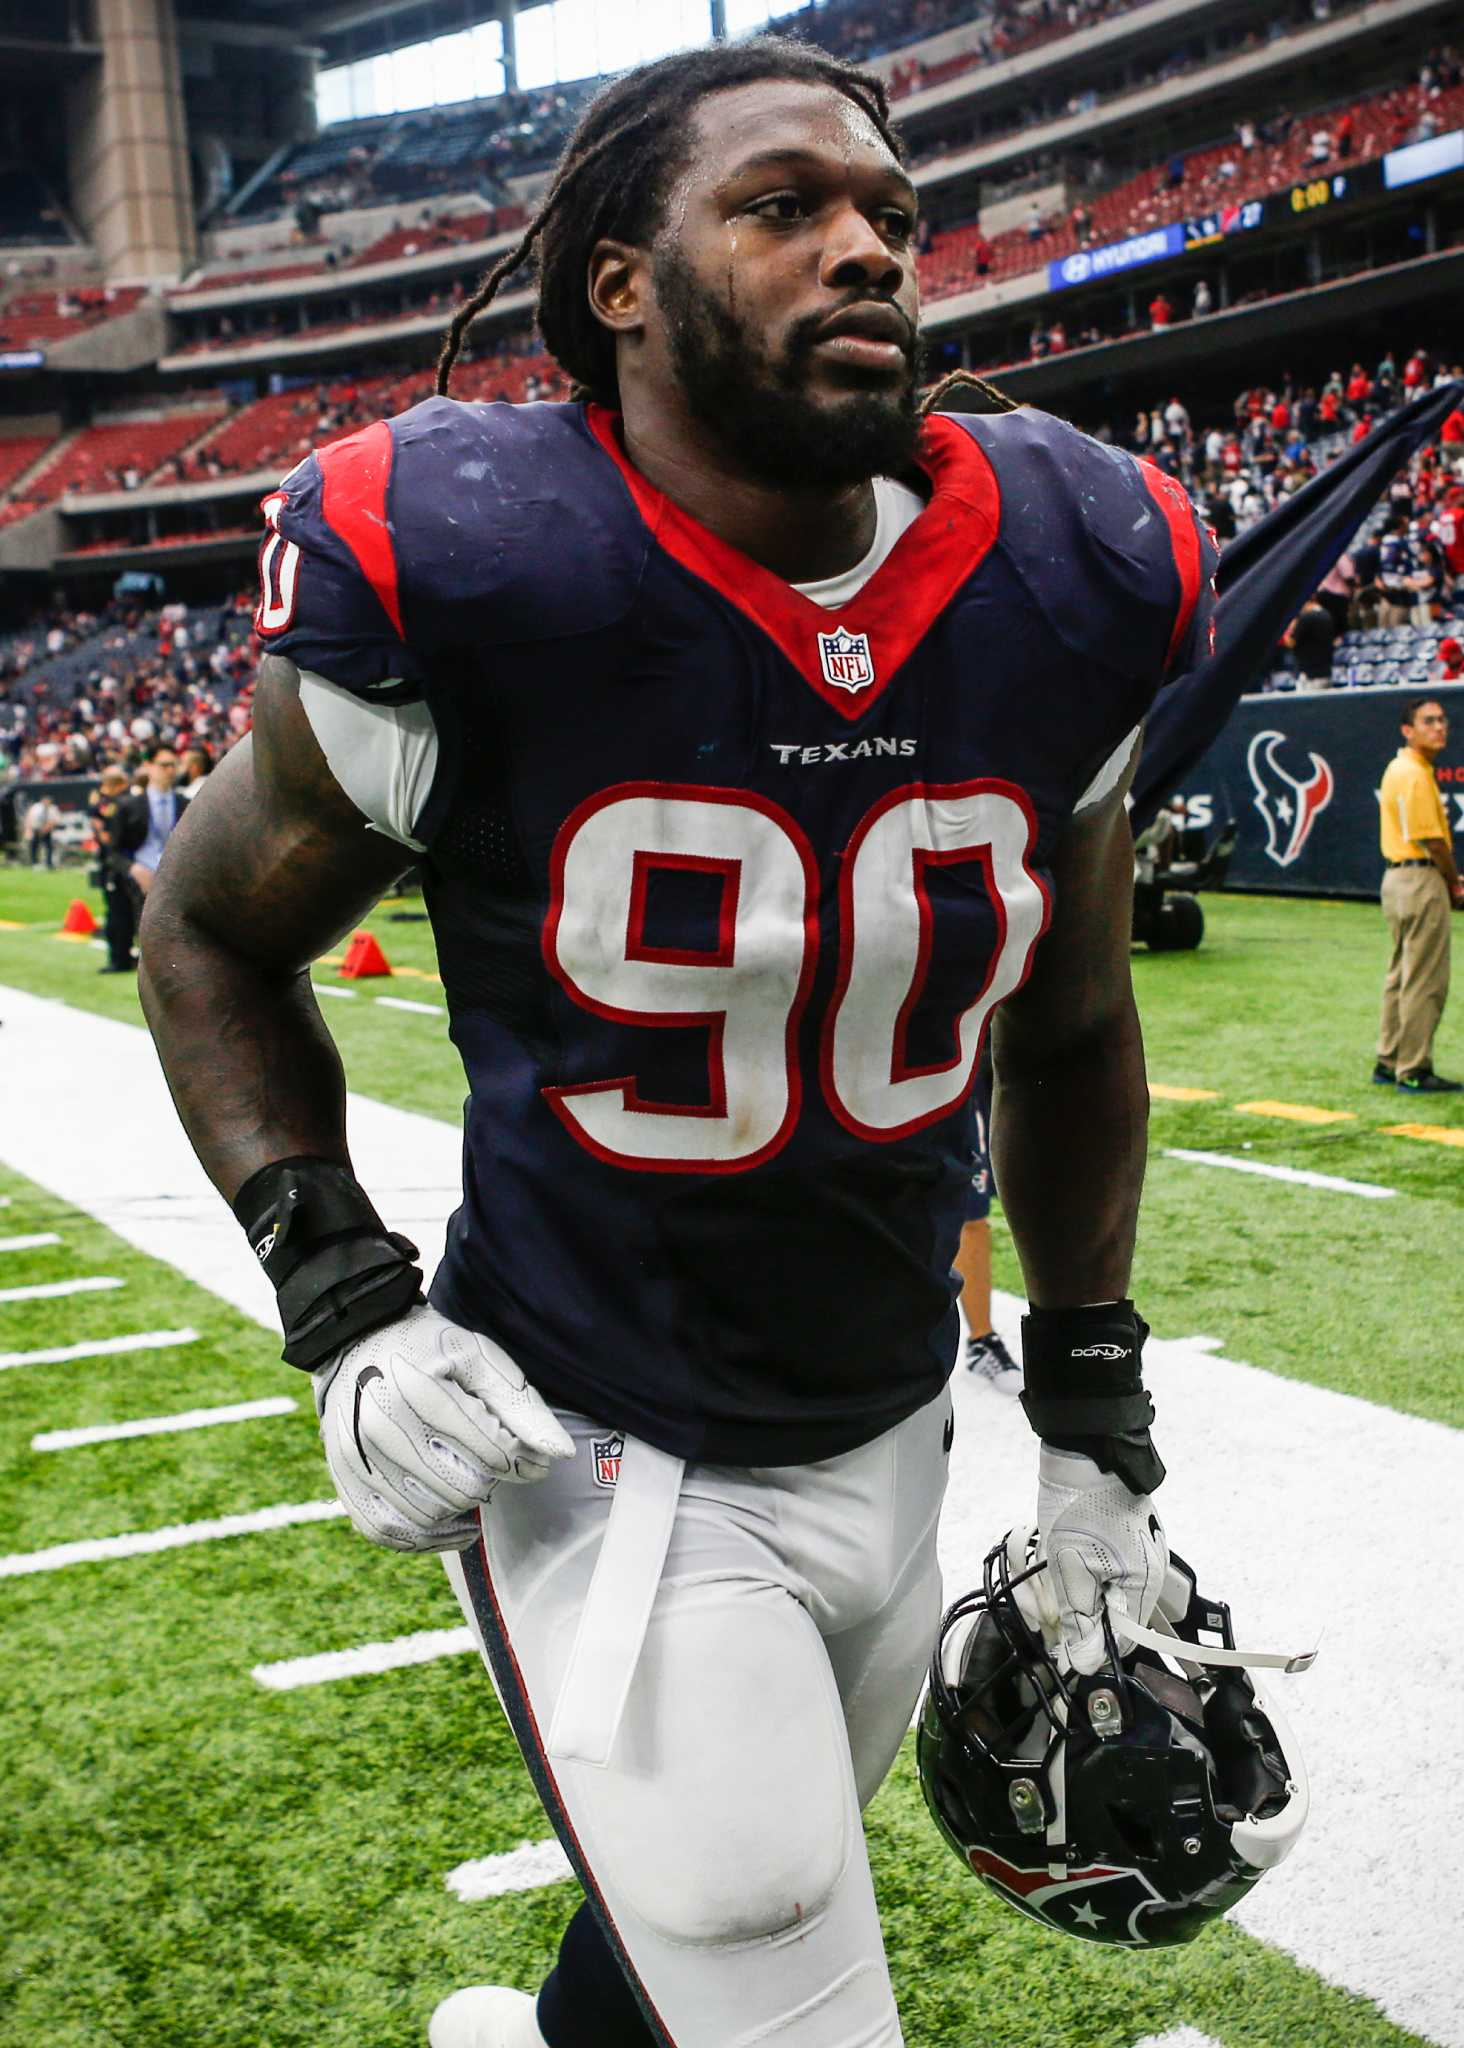 Texans39 Jadeveon Clowney Adapts To Switch From Linebacker